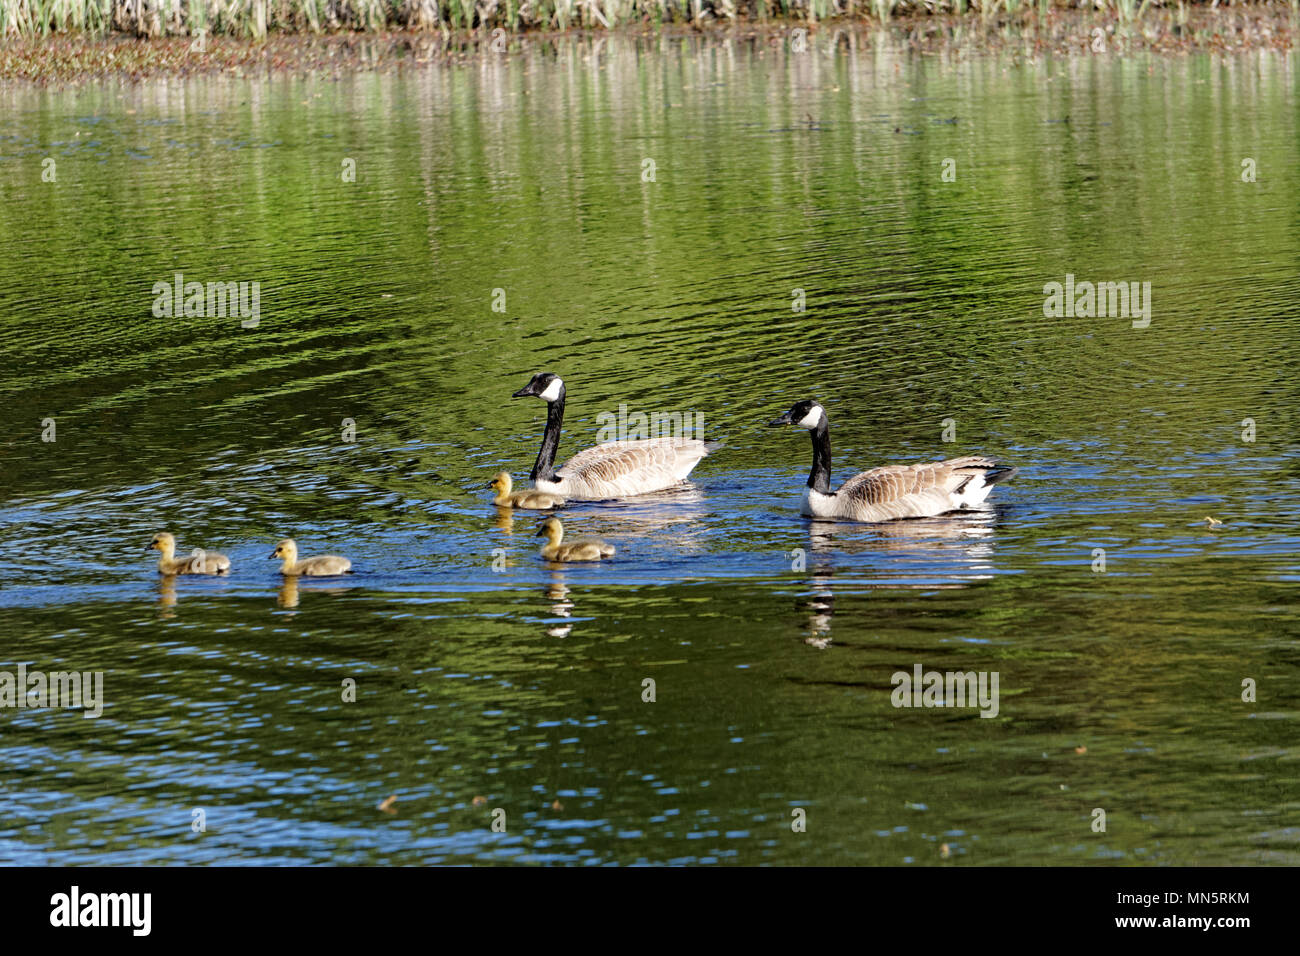 pair-of-canada-geese-with-goslings-swimm